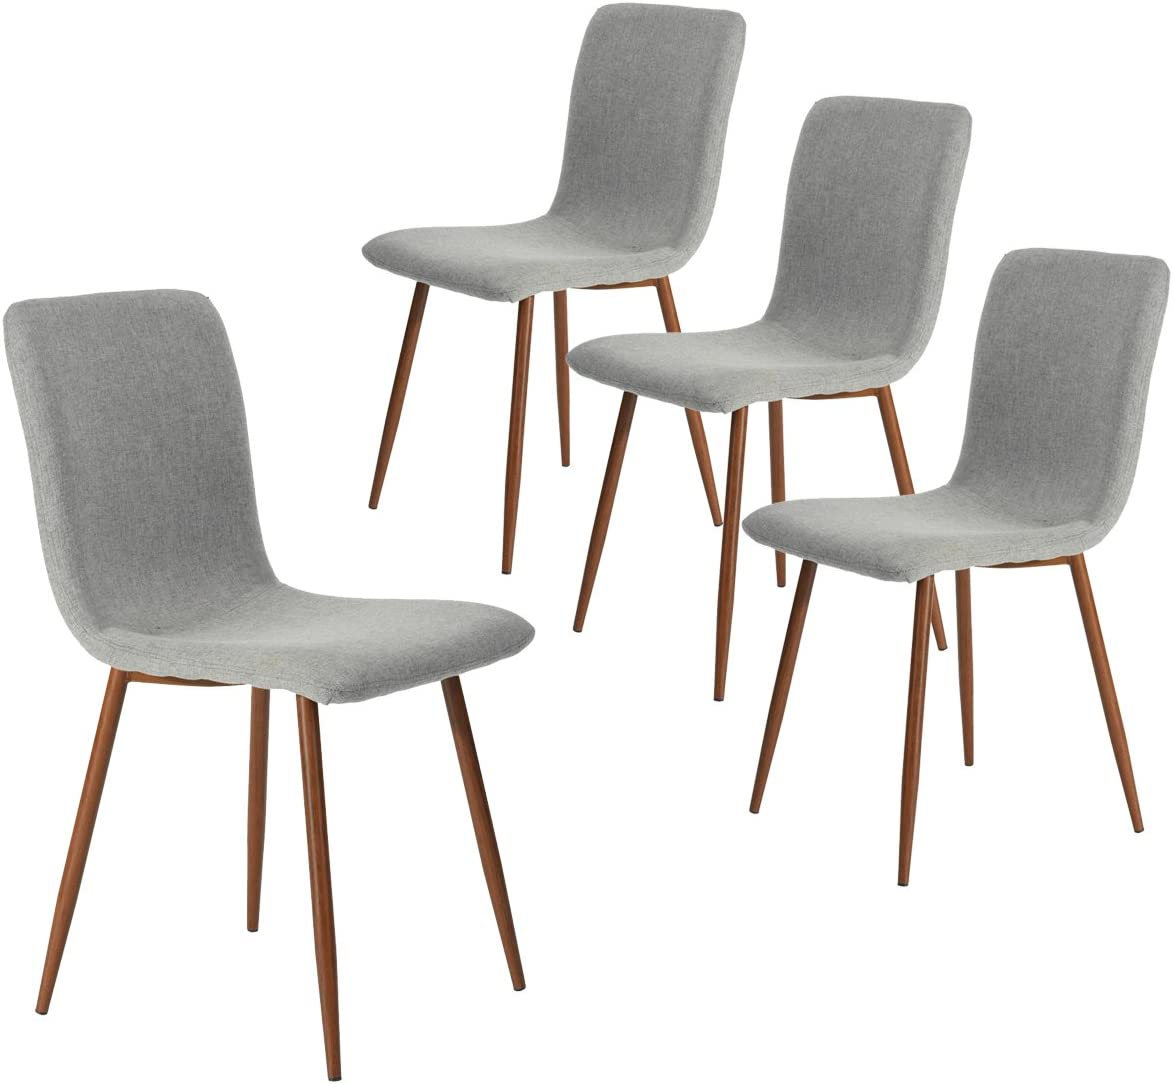 Coavas Dining Chairs Set of 10 Fabric Kitchen Chairs with Sturdy Metal Legs  Dining Room Set Living Room Set, Grey Chairs